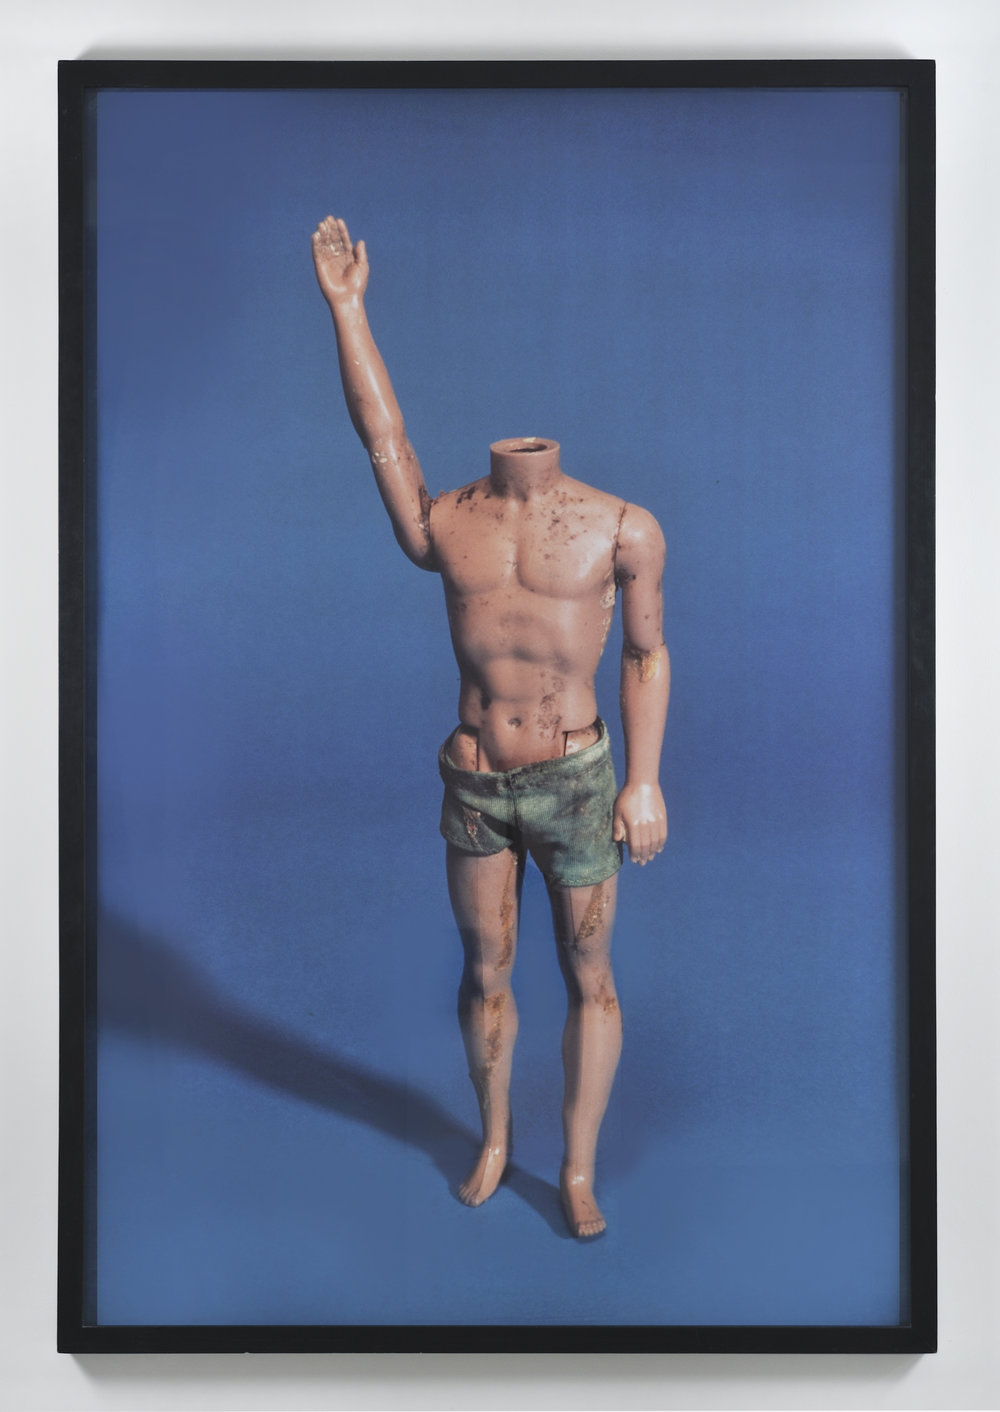 """Paul McCarthy, Ken with No Head (from """"Propo Objects"""" / 1973-1983), 1992-1993 c-print ed. 1/3 190 x 127 cm - 74 3/4 x 50 inches"""